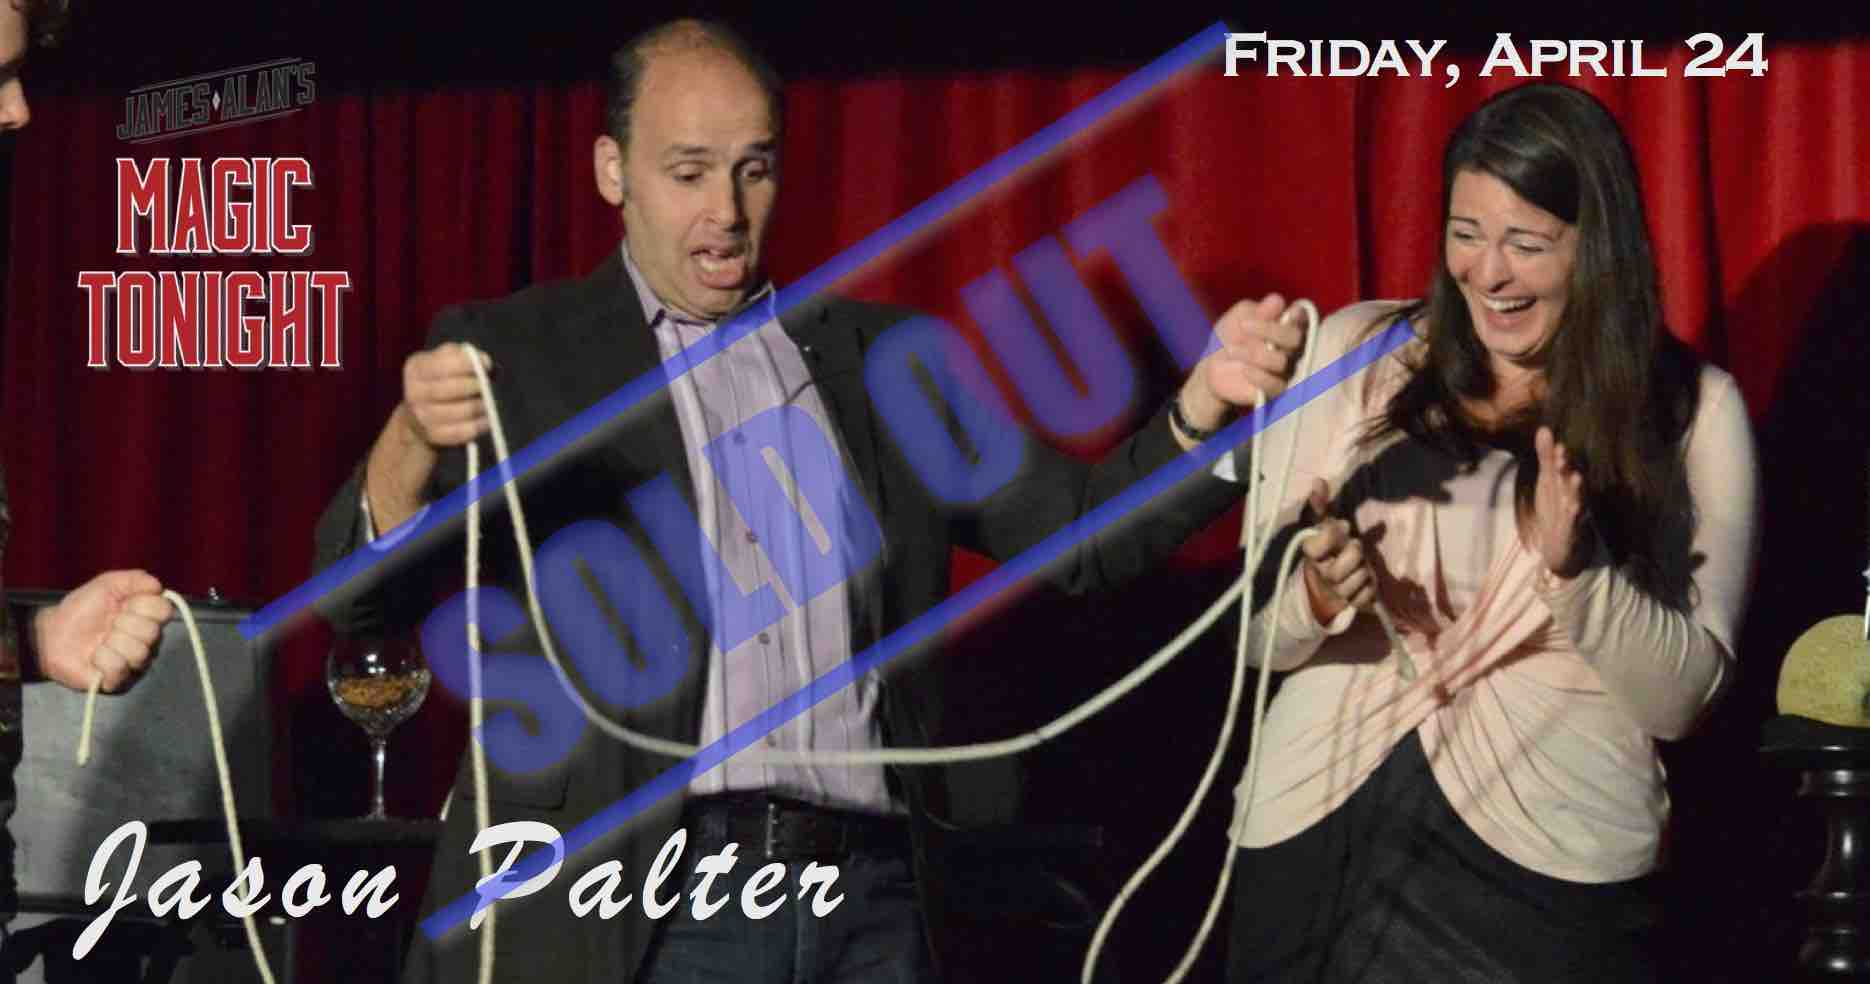 Apr 24 Jason Palter sold out